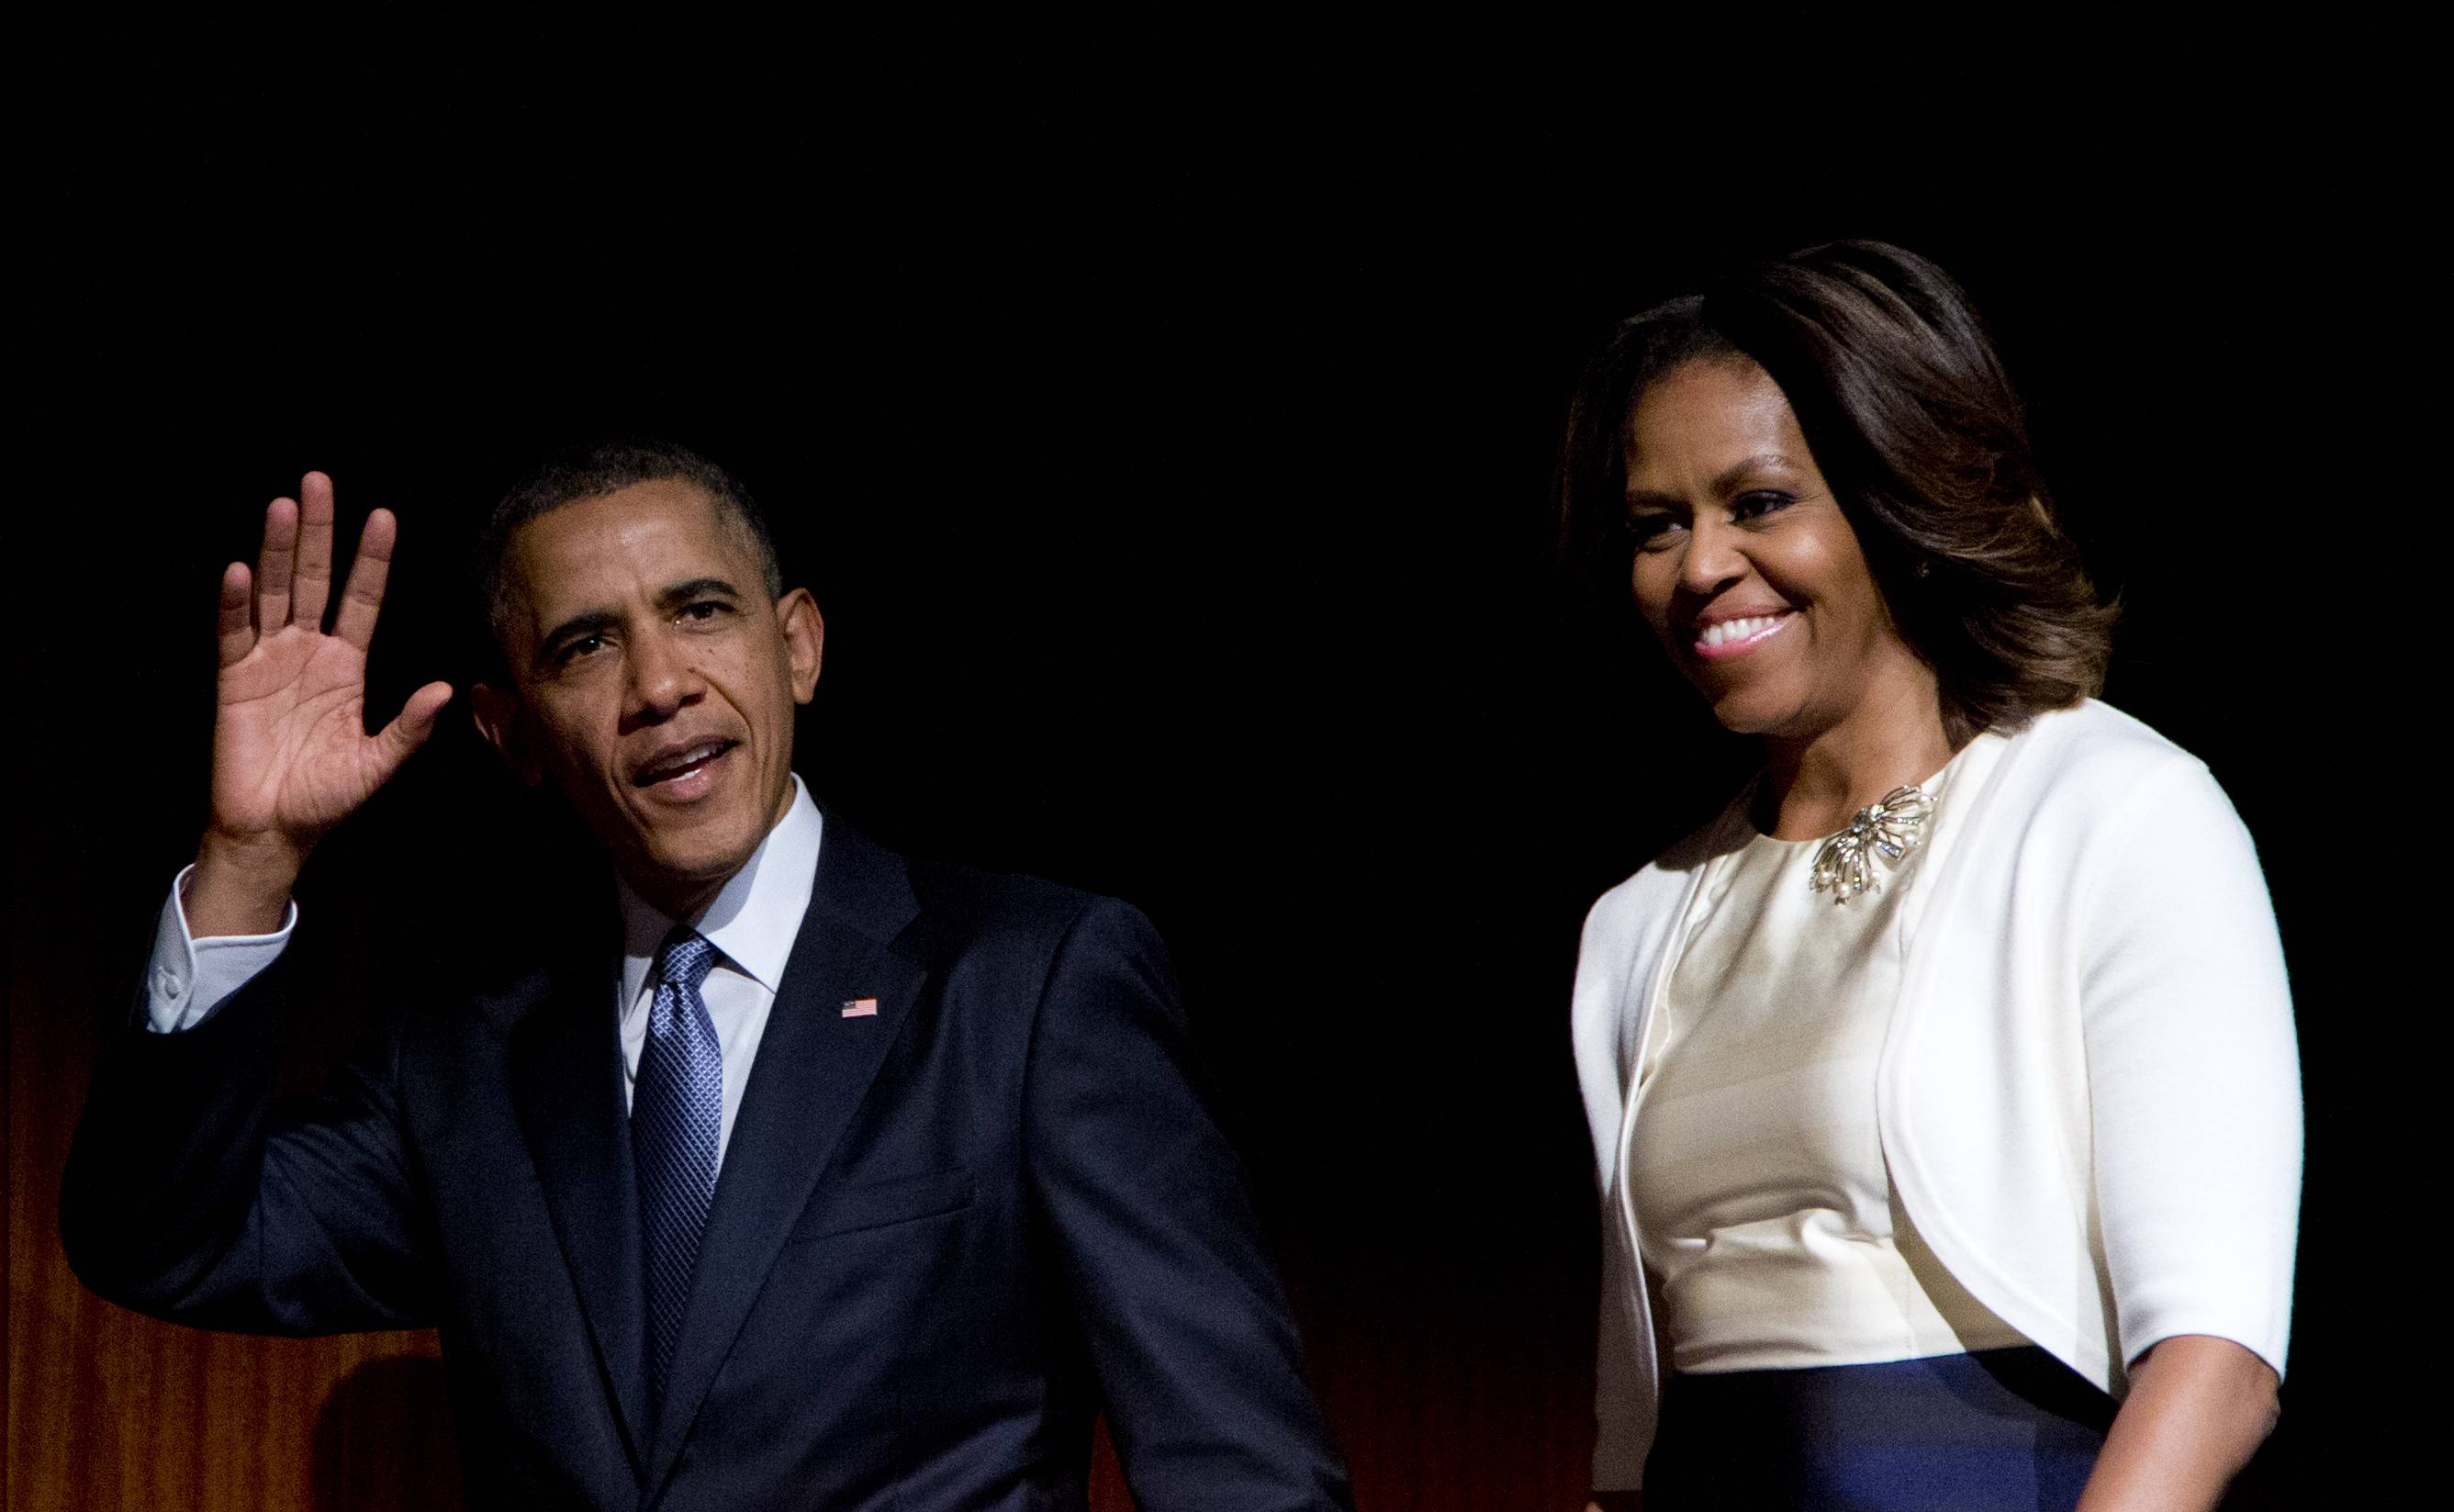 President Barack Obama and first lady Michelle Obama arrive on stage before the president spoke at the LBJ Presidential Library Thursday in Austin, Texas, during the Civil Rights Summit to commemorate the 50th anniversary of the signing of the Civil Rights Act.